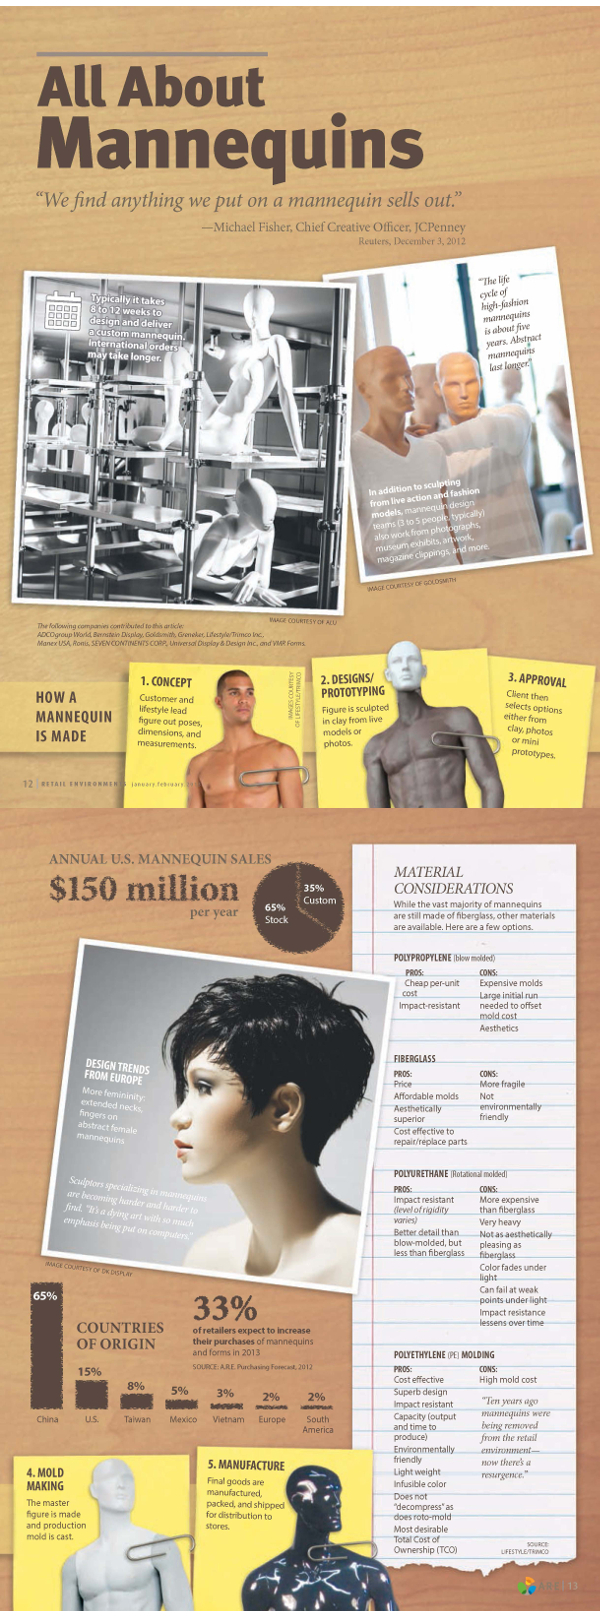 Mannequin Facts and Trends